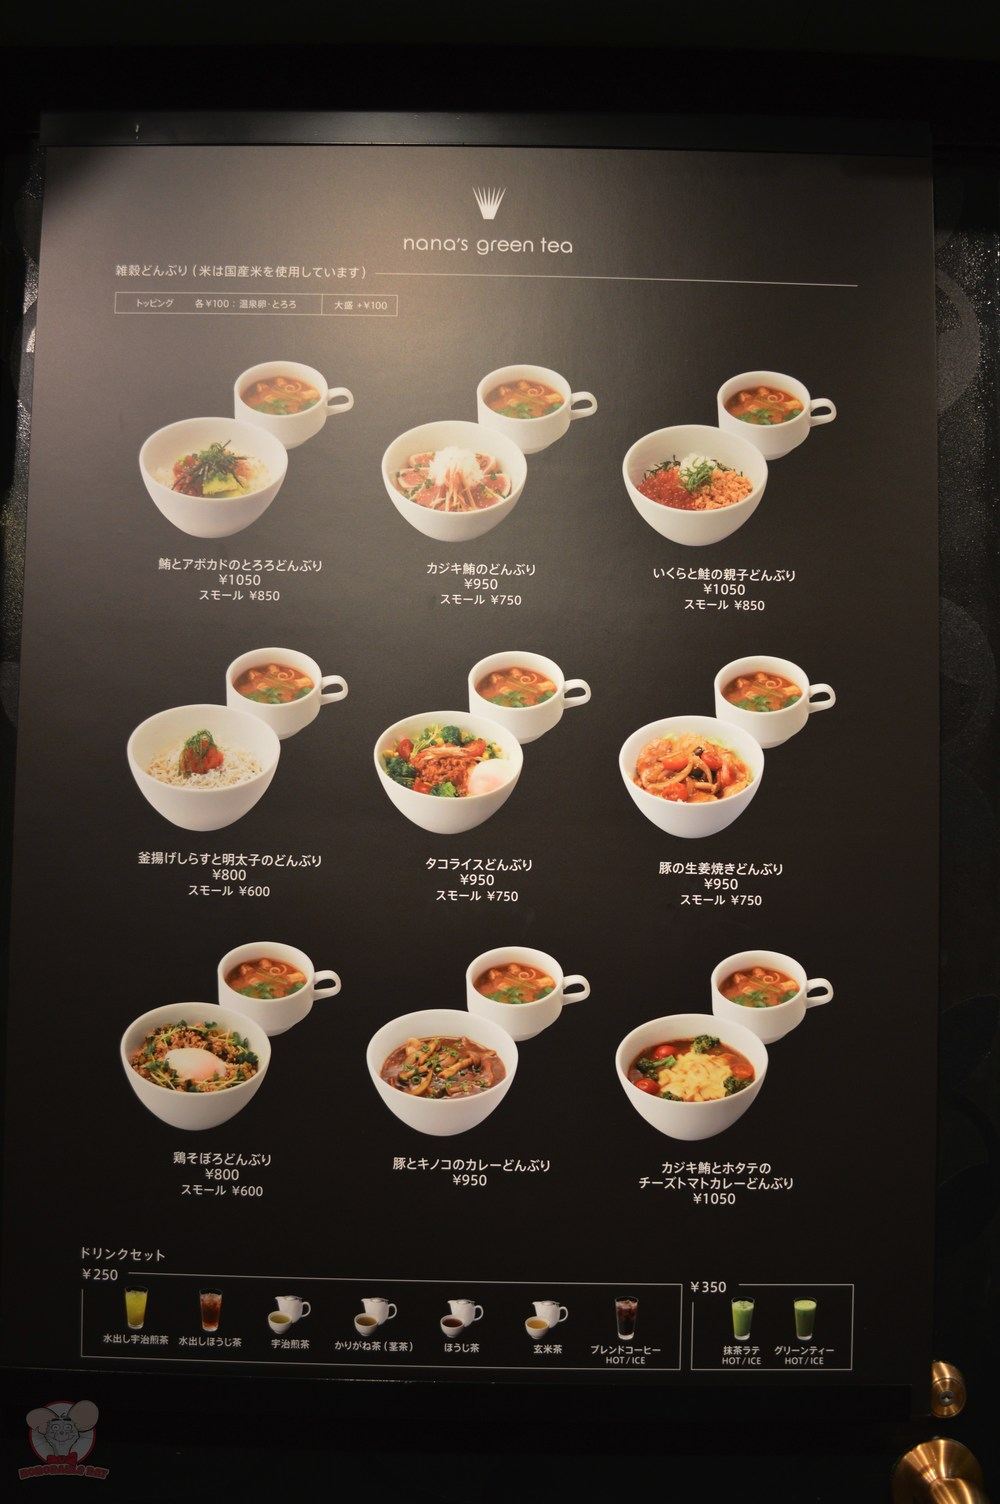 Nana's Green Tea Food Menu